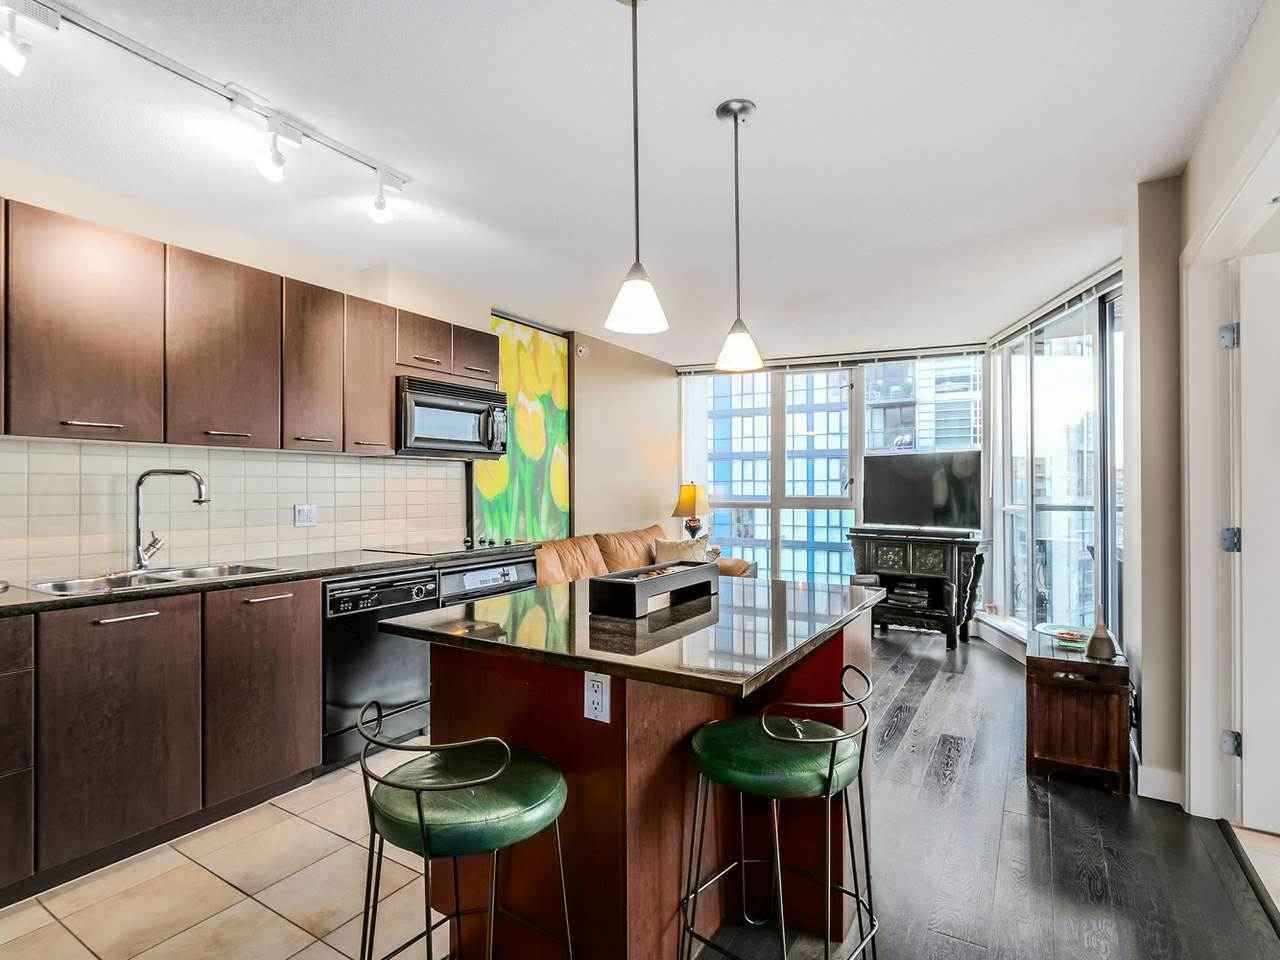 Photo 9: 2308 1155 SEYMOUR STREET in Vancouver: Downtown VW Condo for sale (Vancouver West)  : MLS® # R2026499